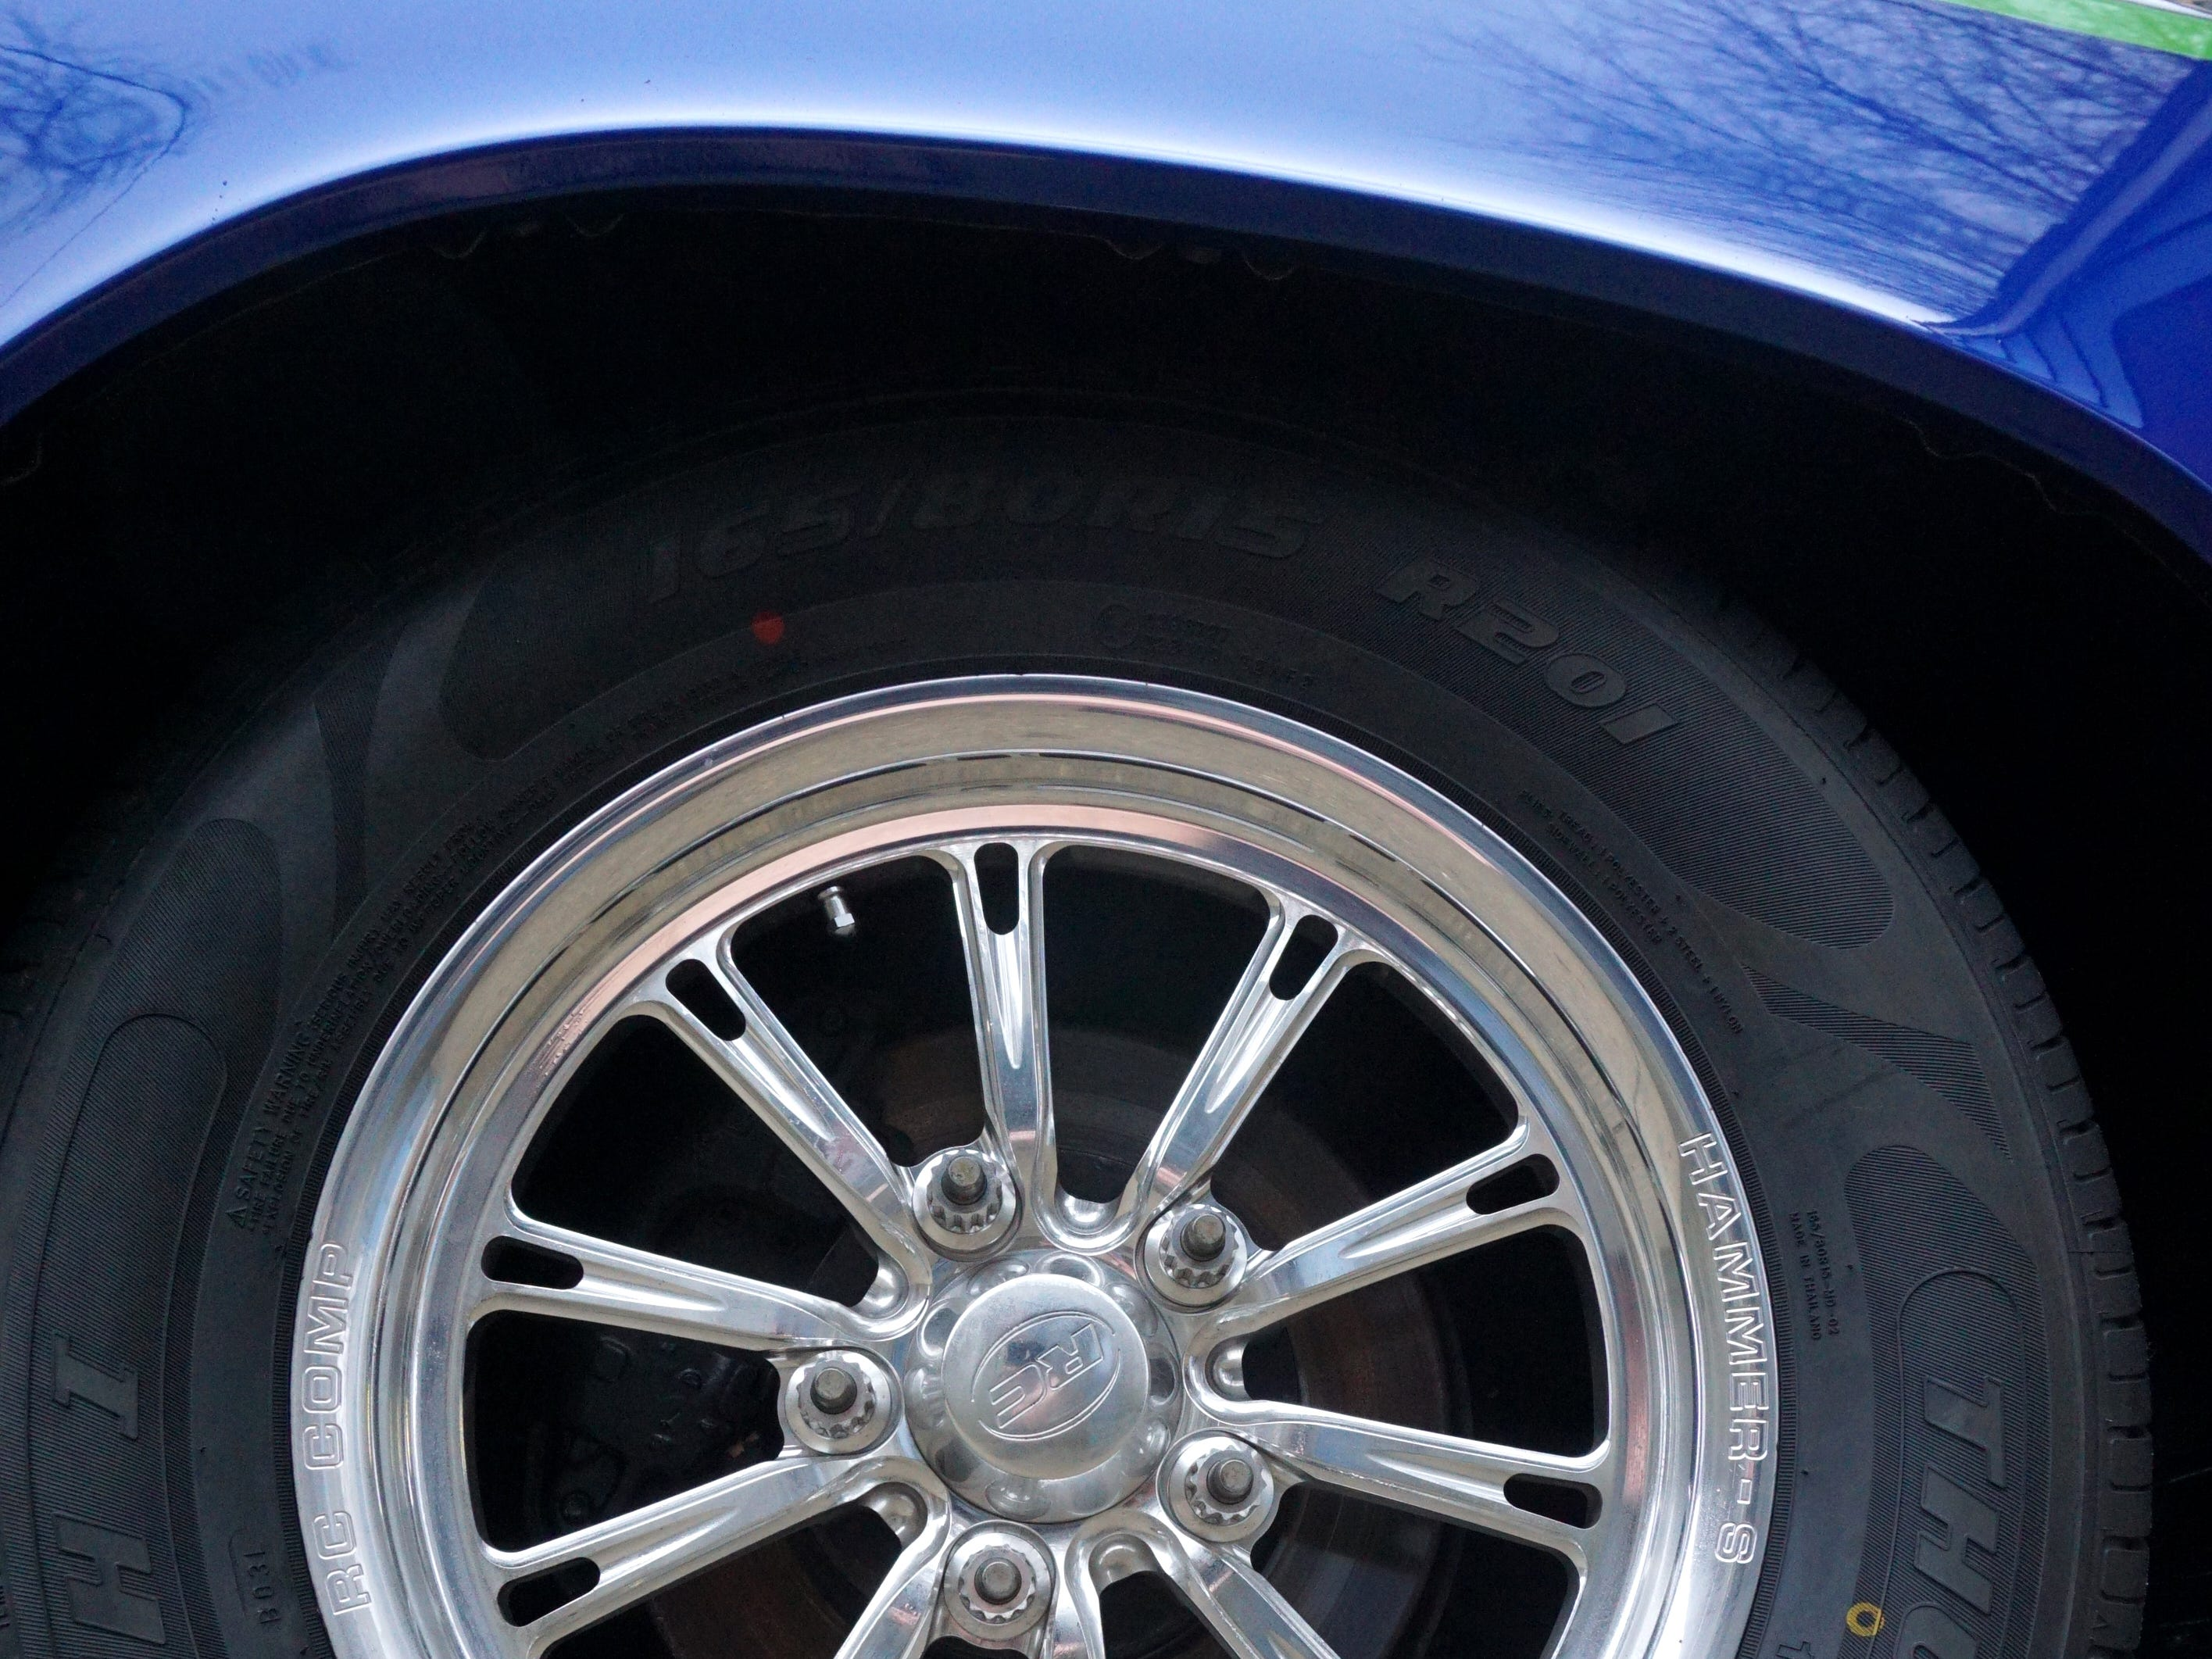 The rims of Carey's Chevelle are custom-made.